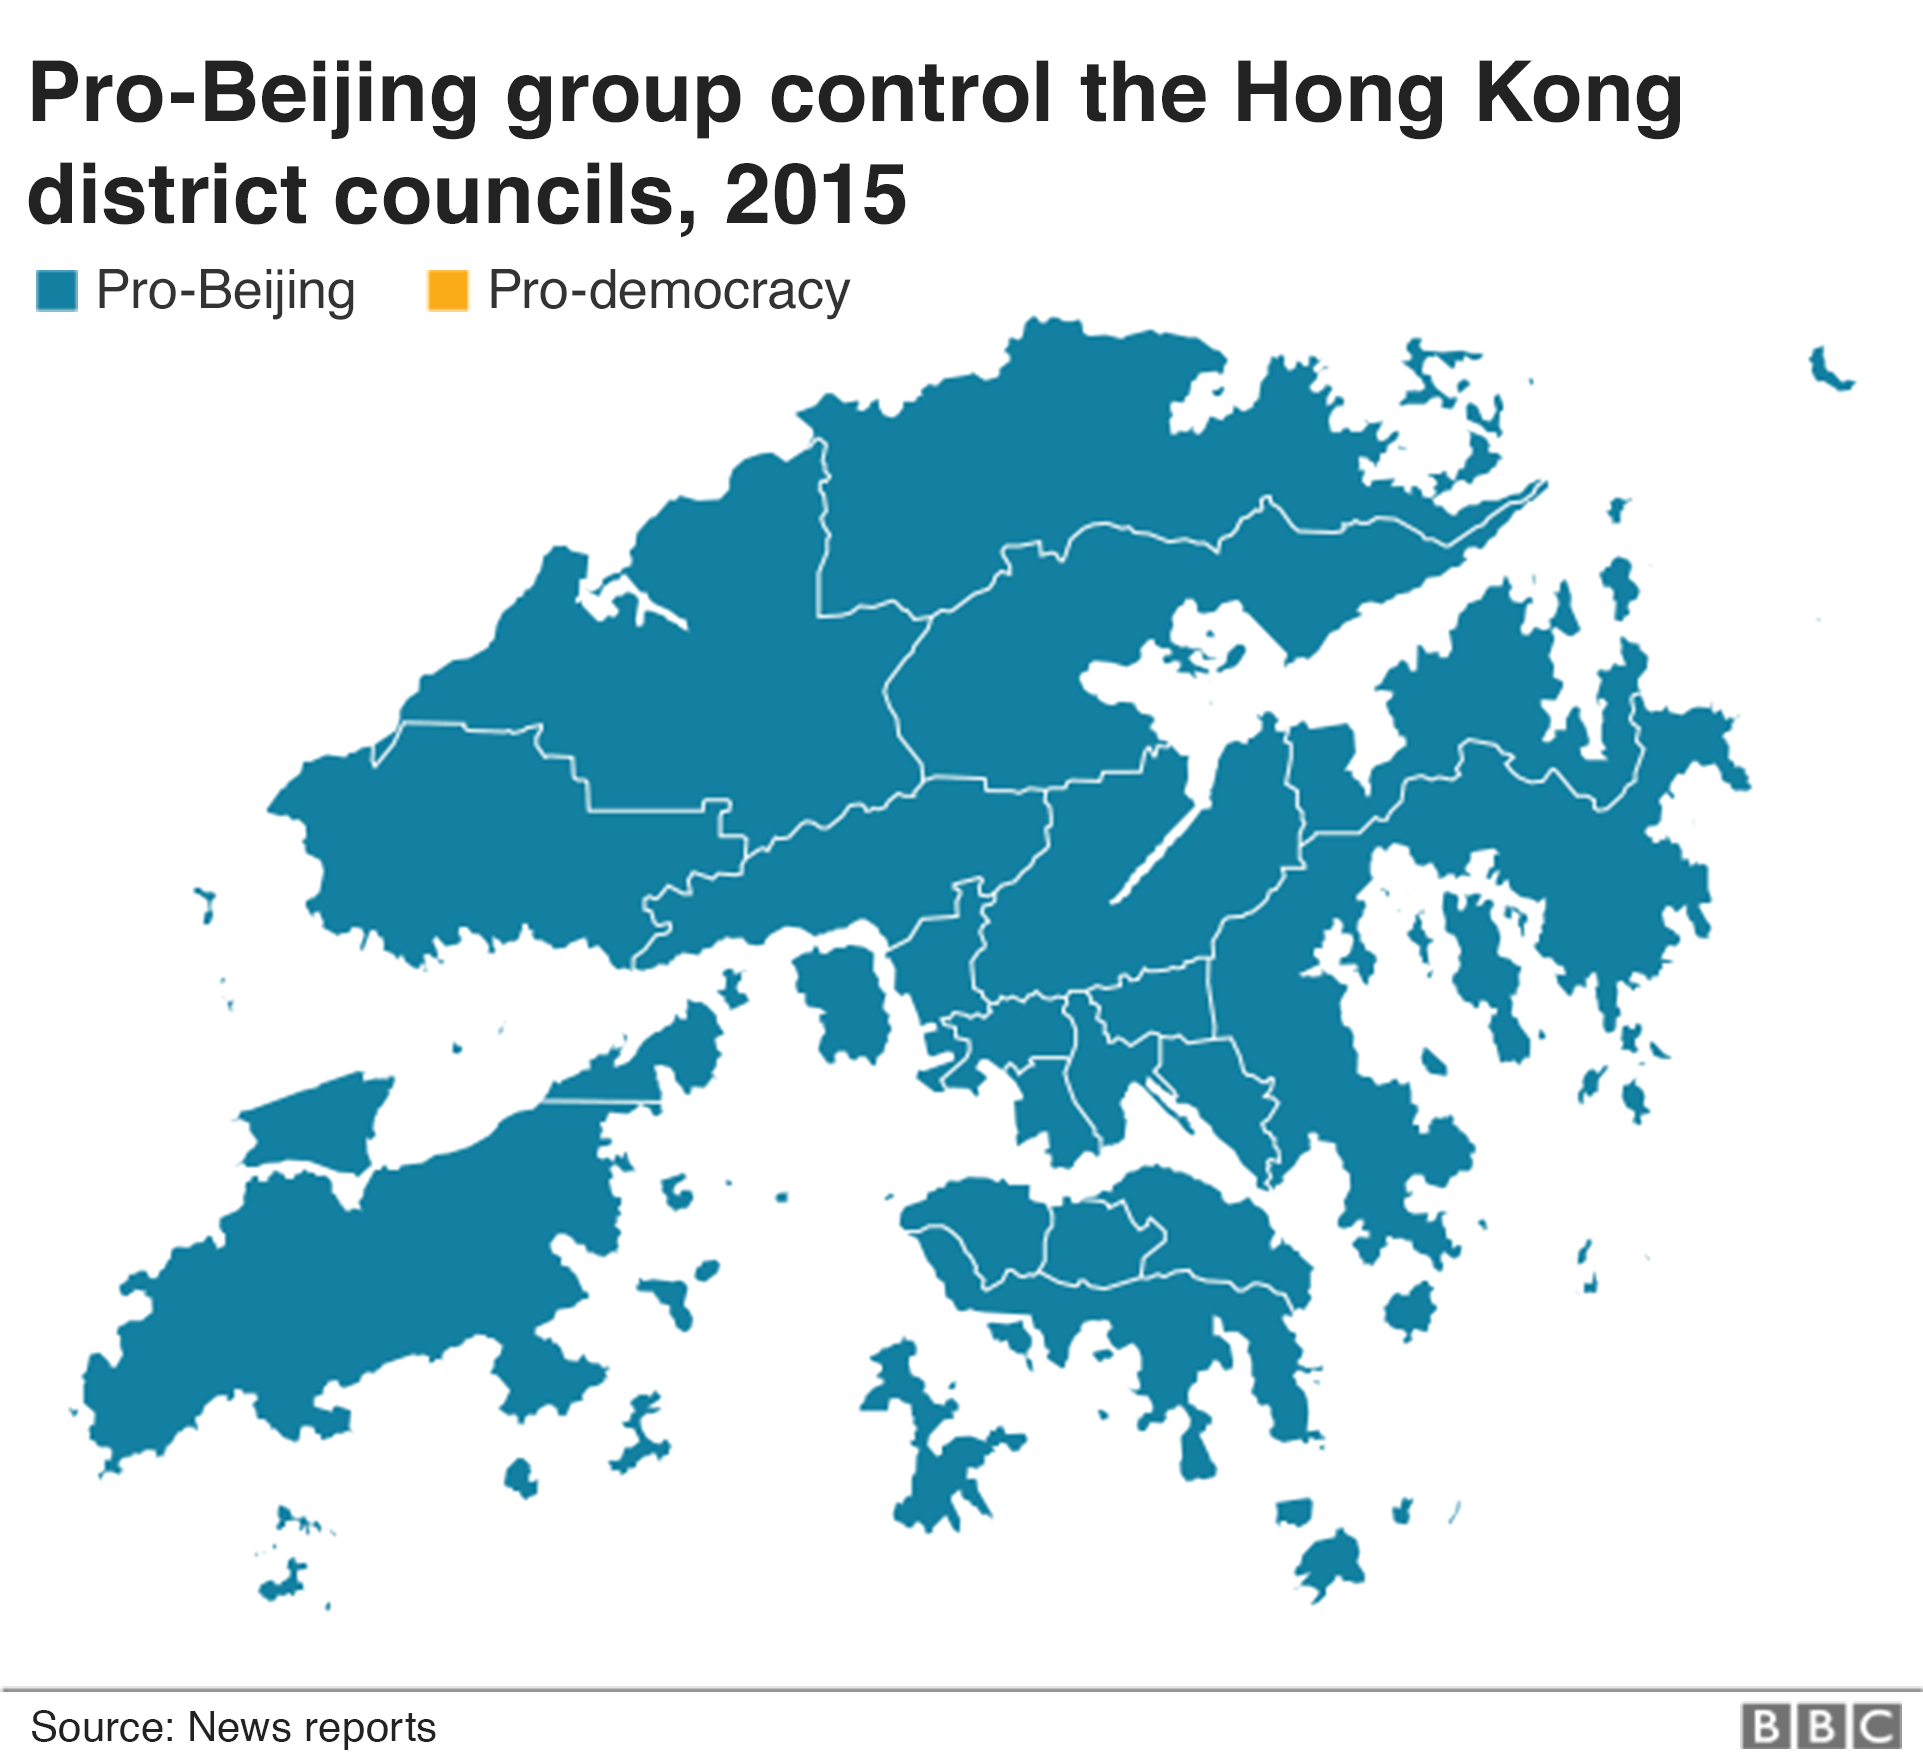 A map shows control of the district councils in 2015